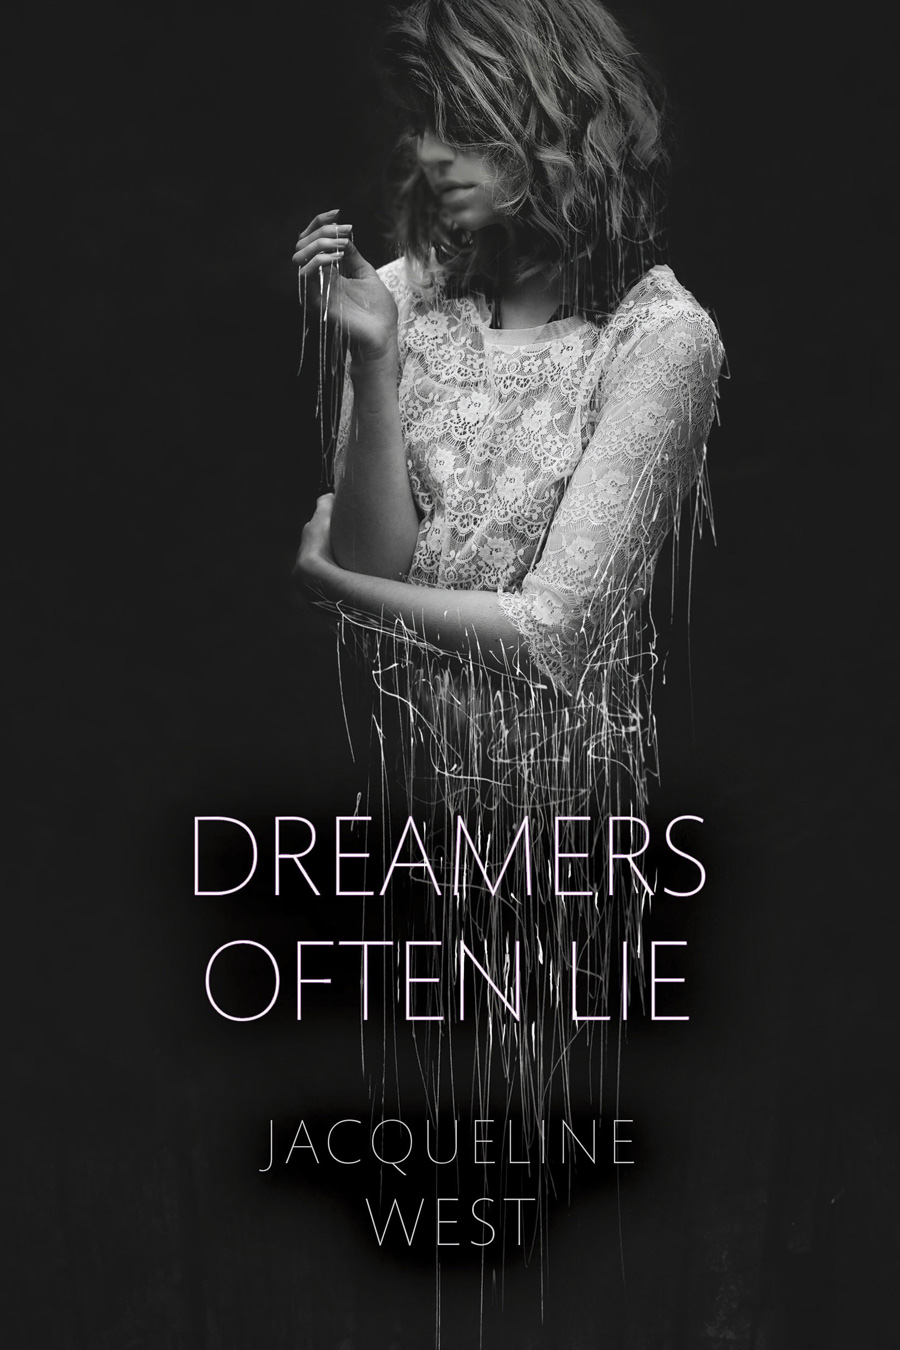 Dreamers Often Lie by Jacqueline West - cover